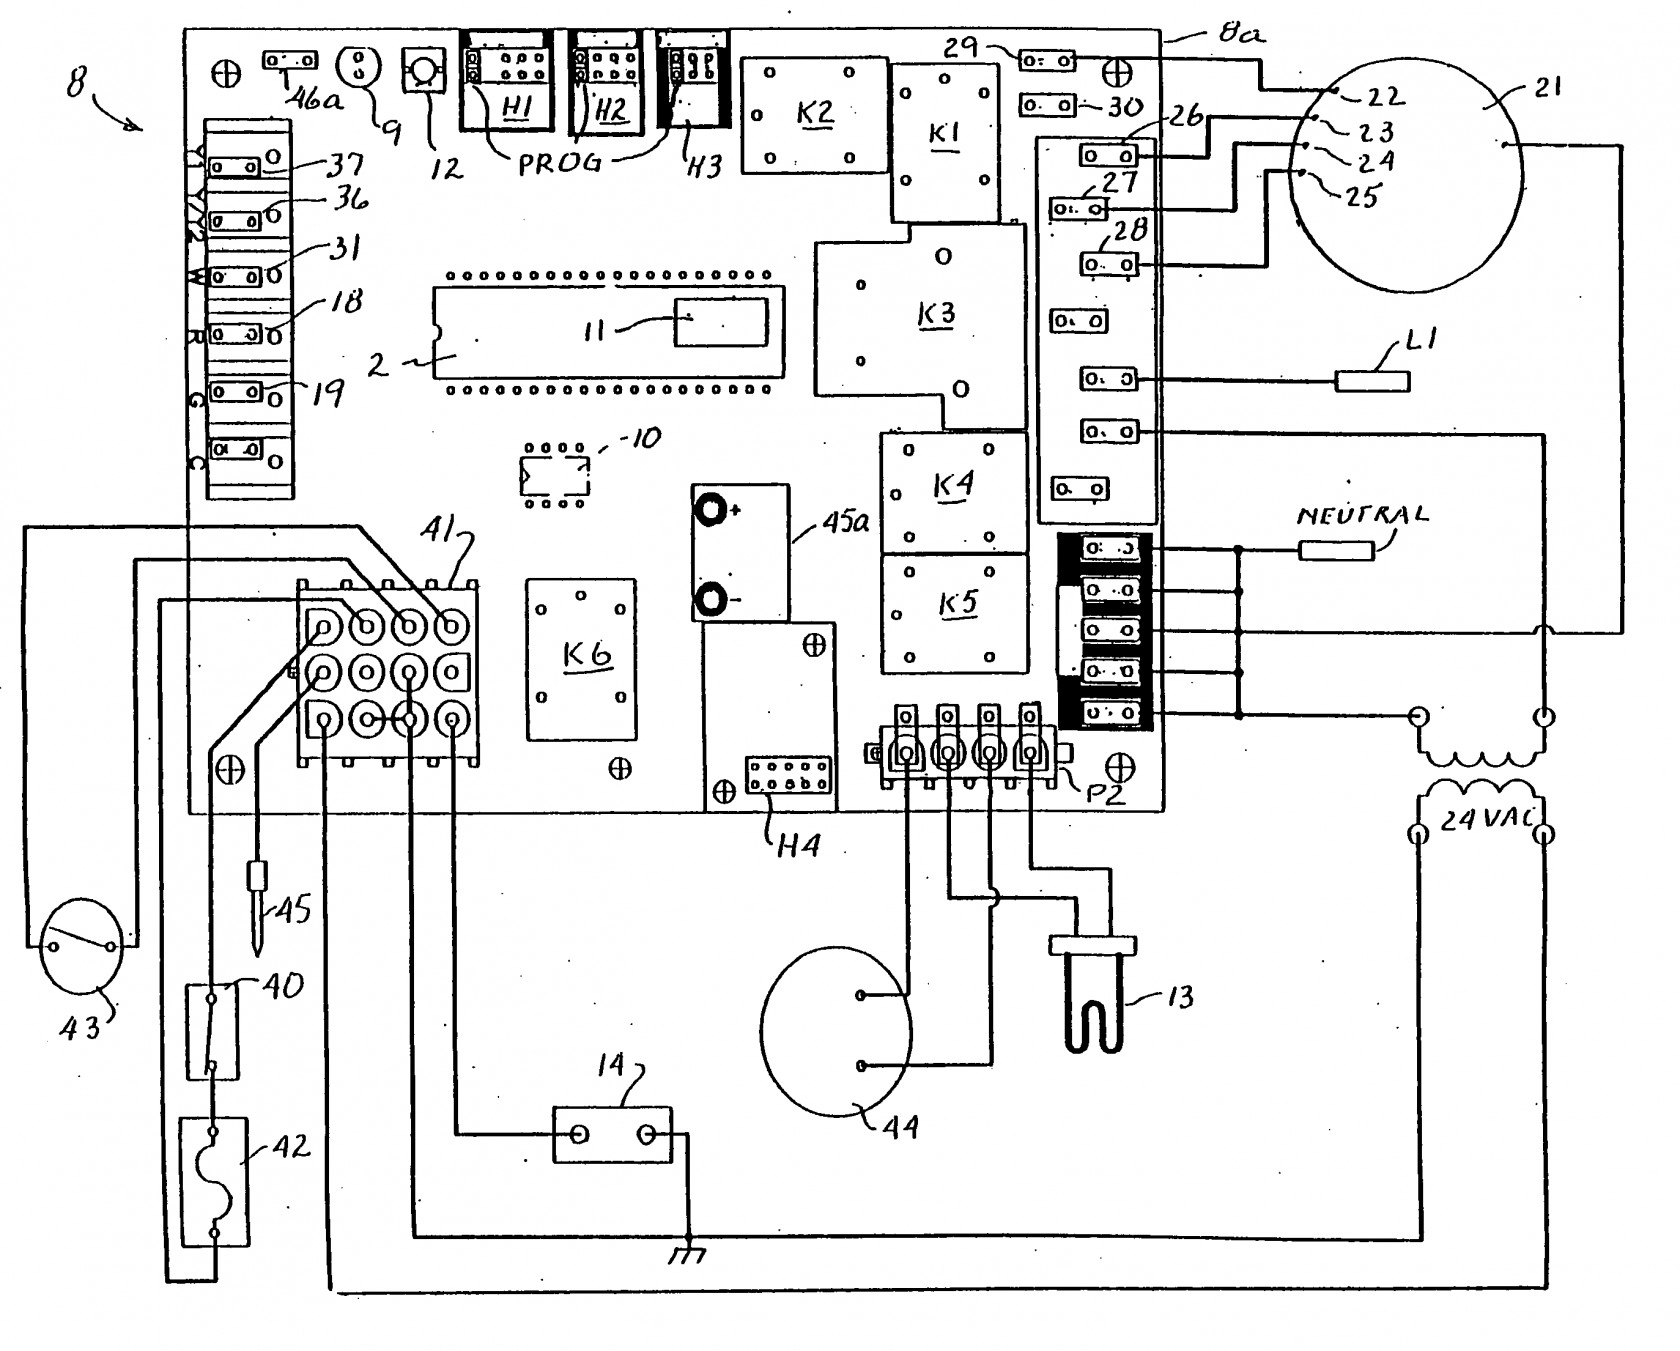 Furnace Control Board Wiring Diagram Download on